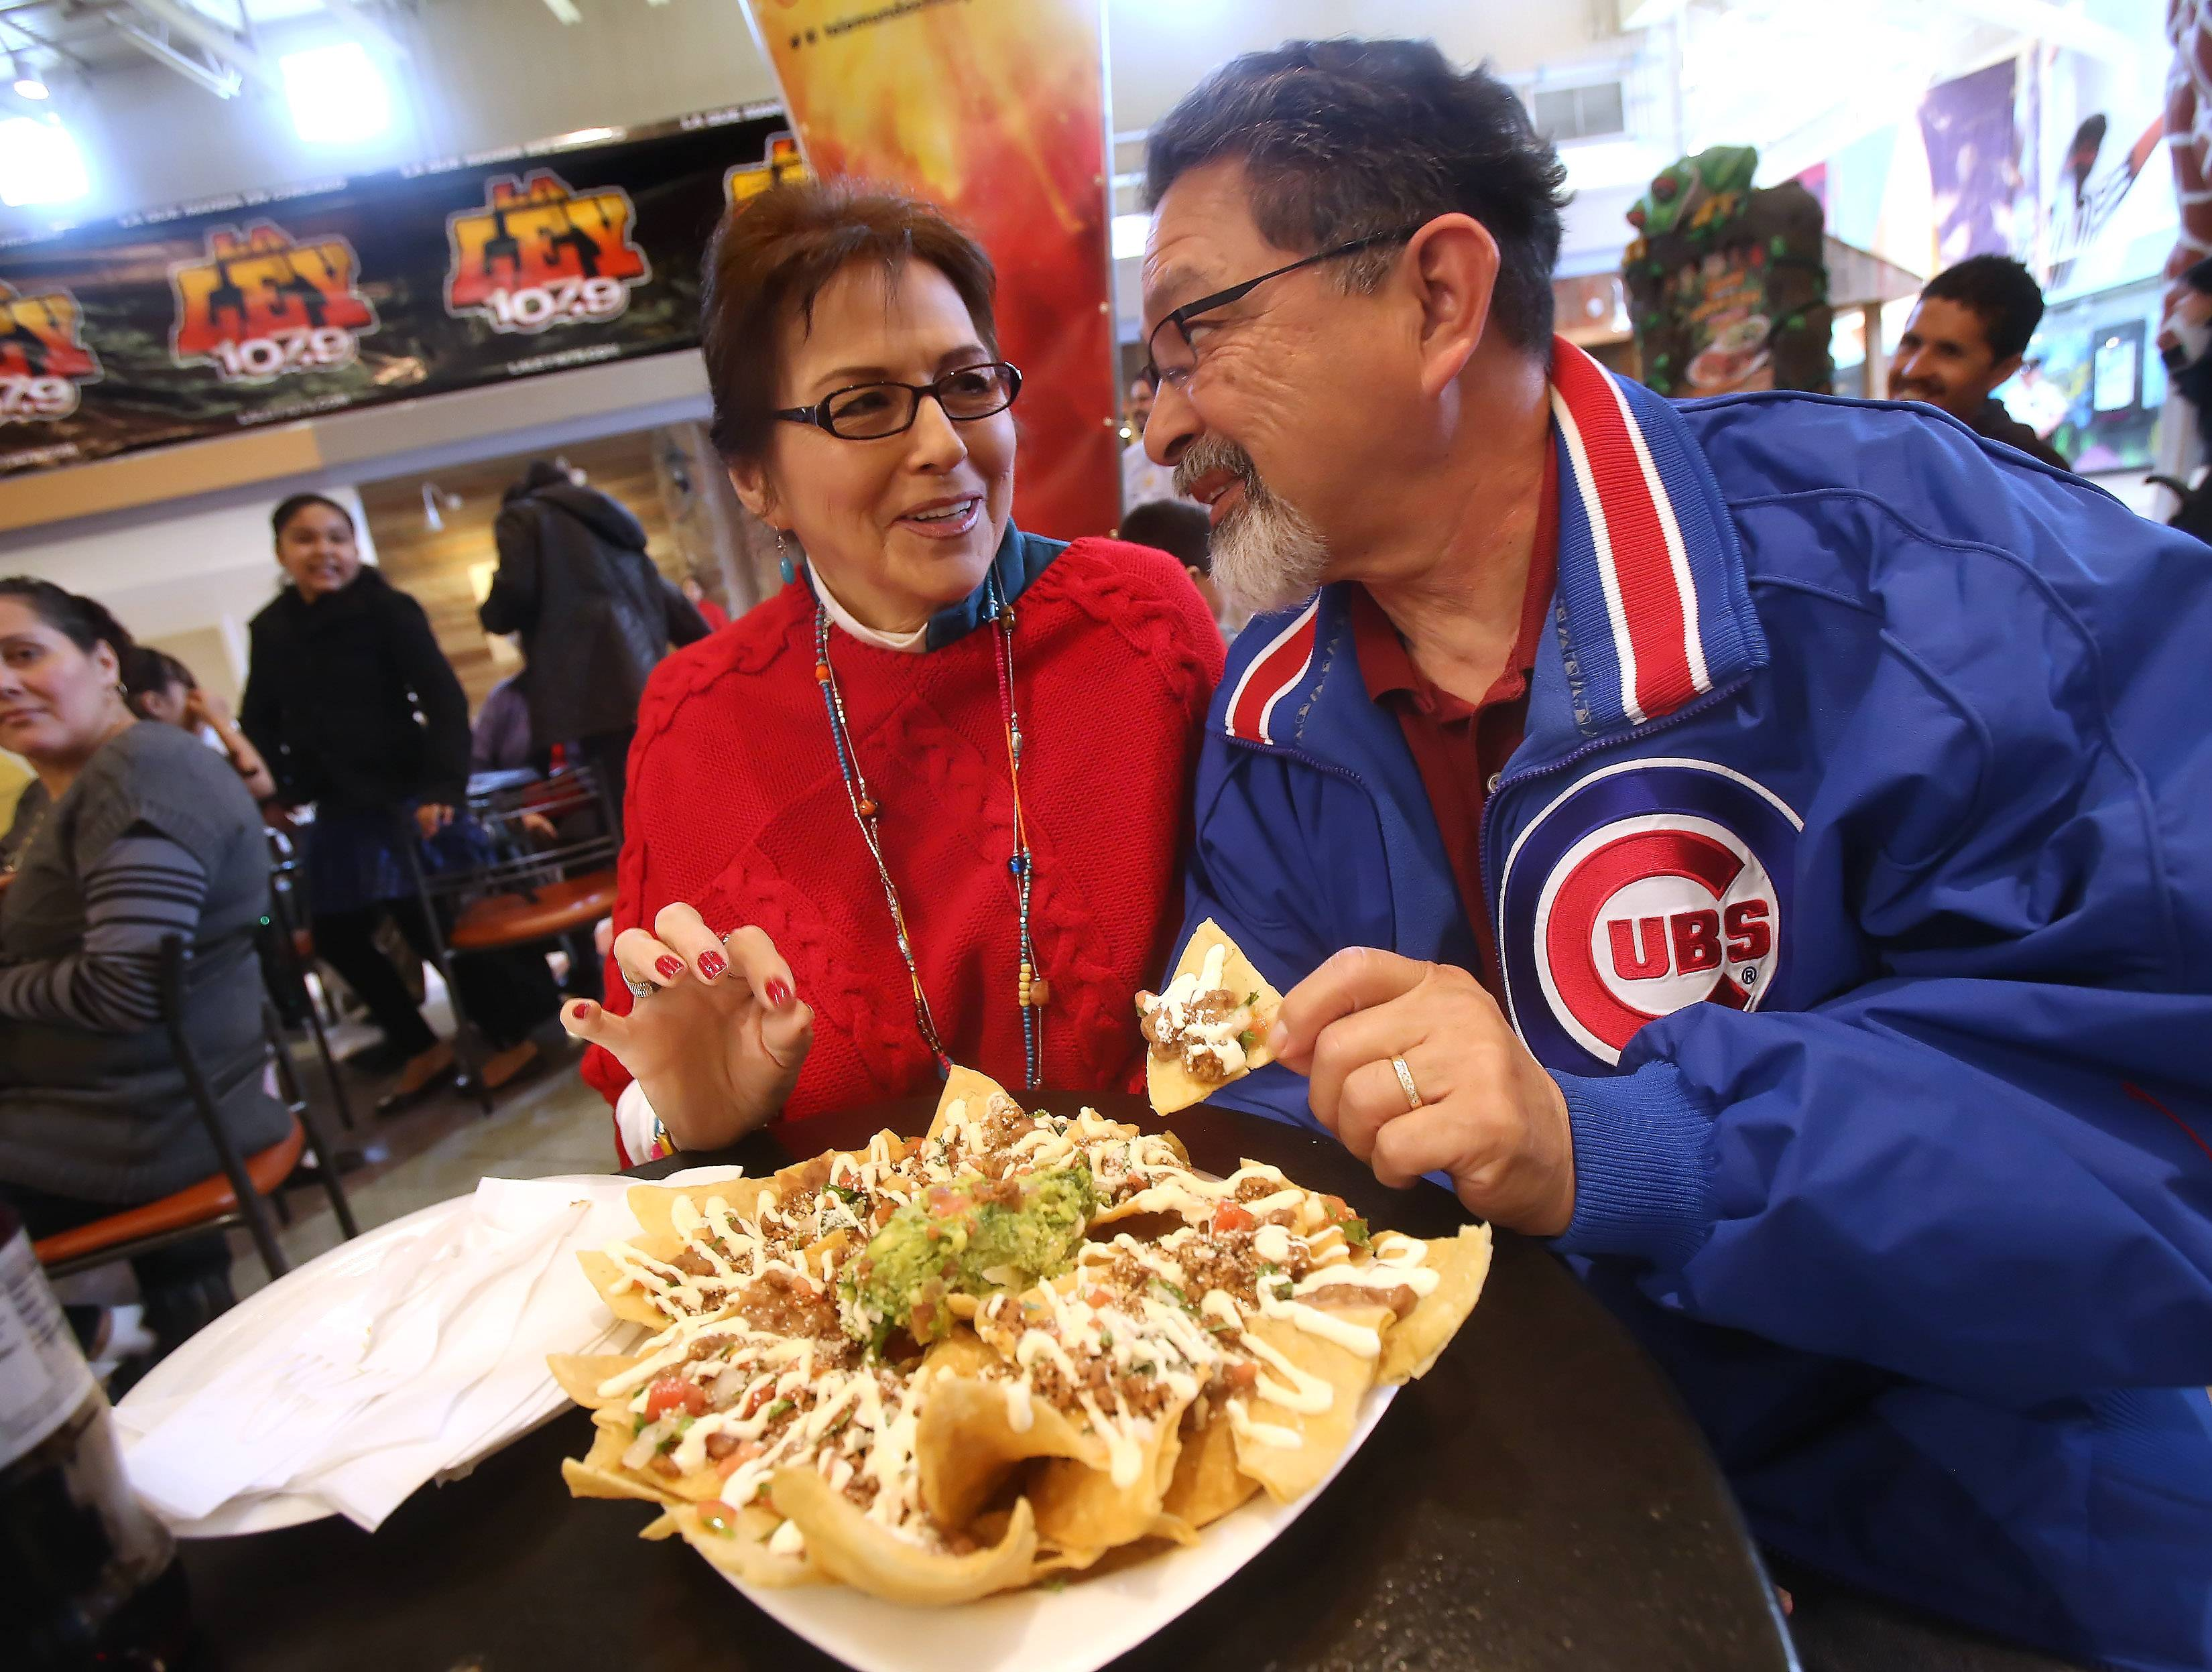 Rosie and Joe Cuellar of Lake Zurich enjoy nachos during the first Cinco de Mayo celebration at Gurnee Mills on Sunday. The event include several Latino artists, food samplings, face paintings and giveaways.